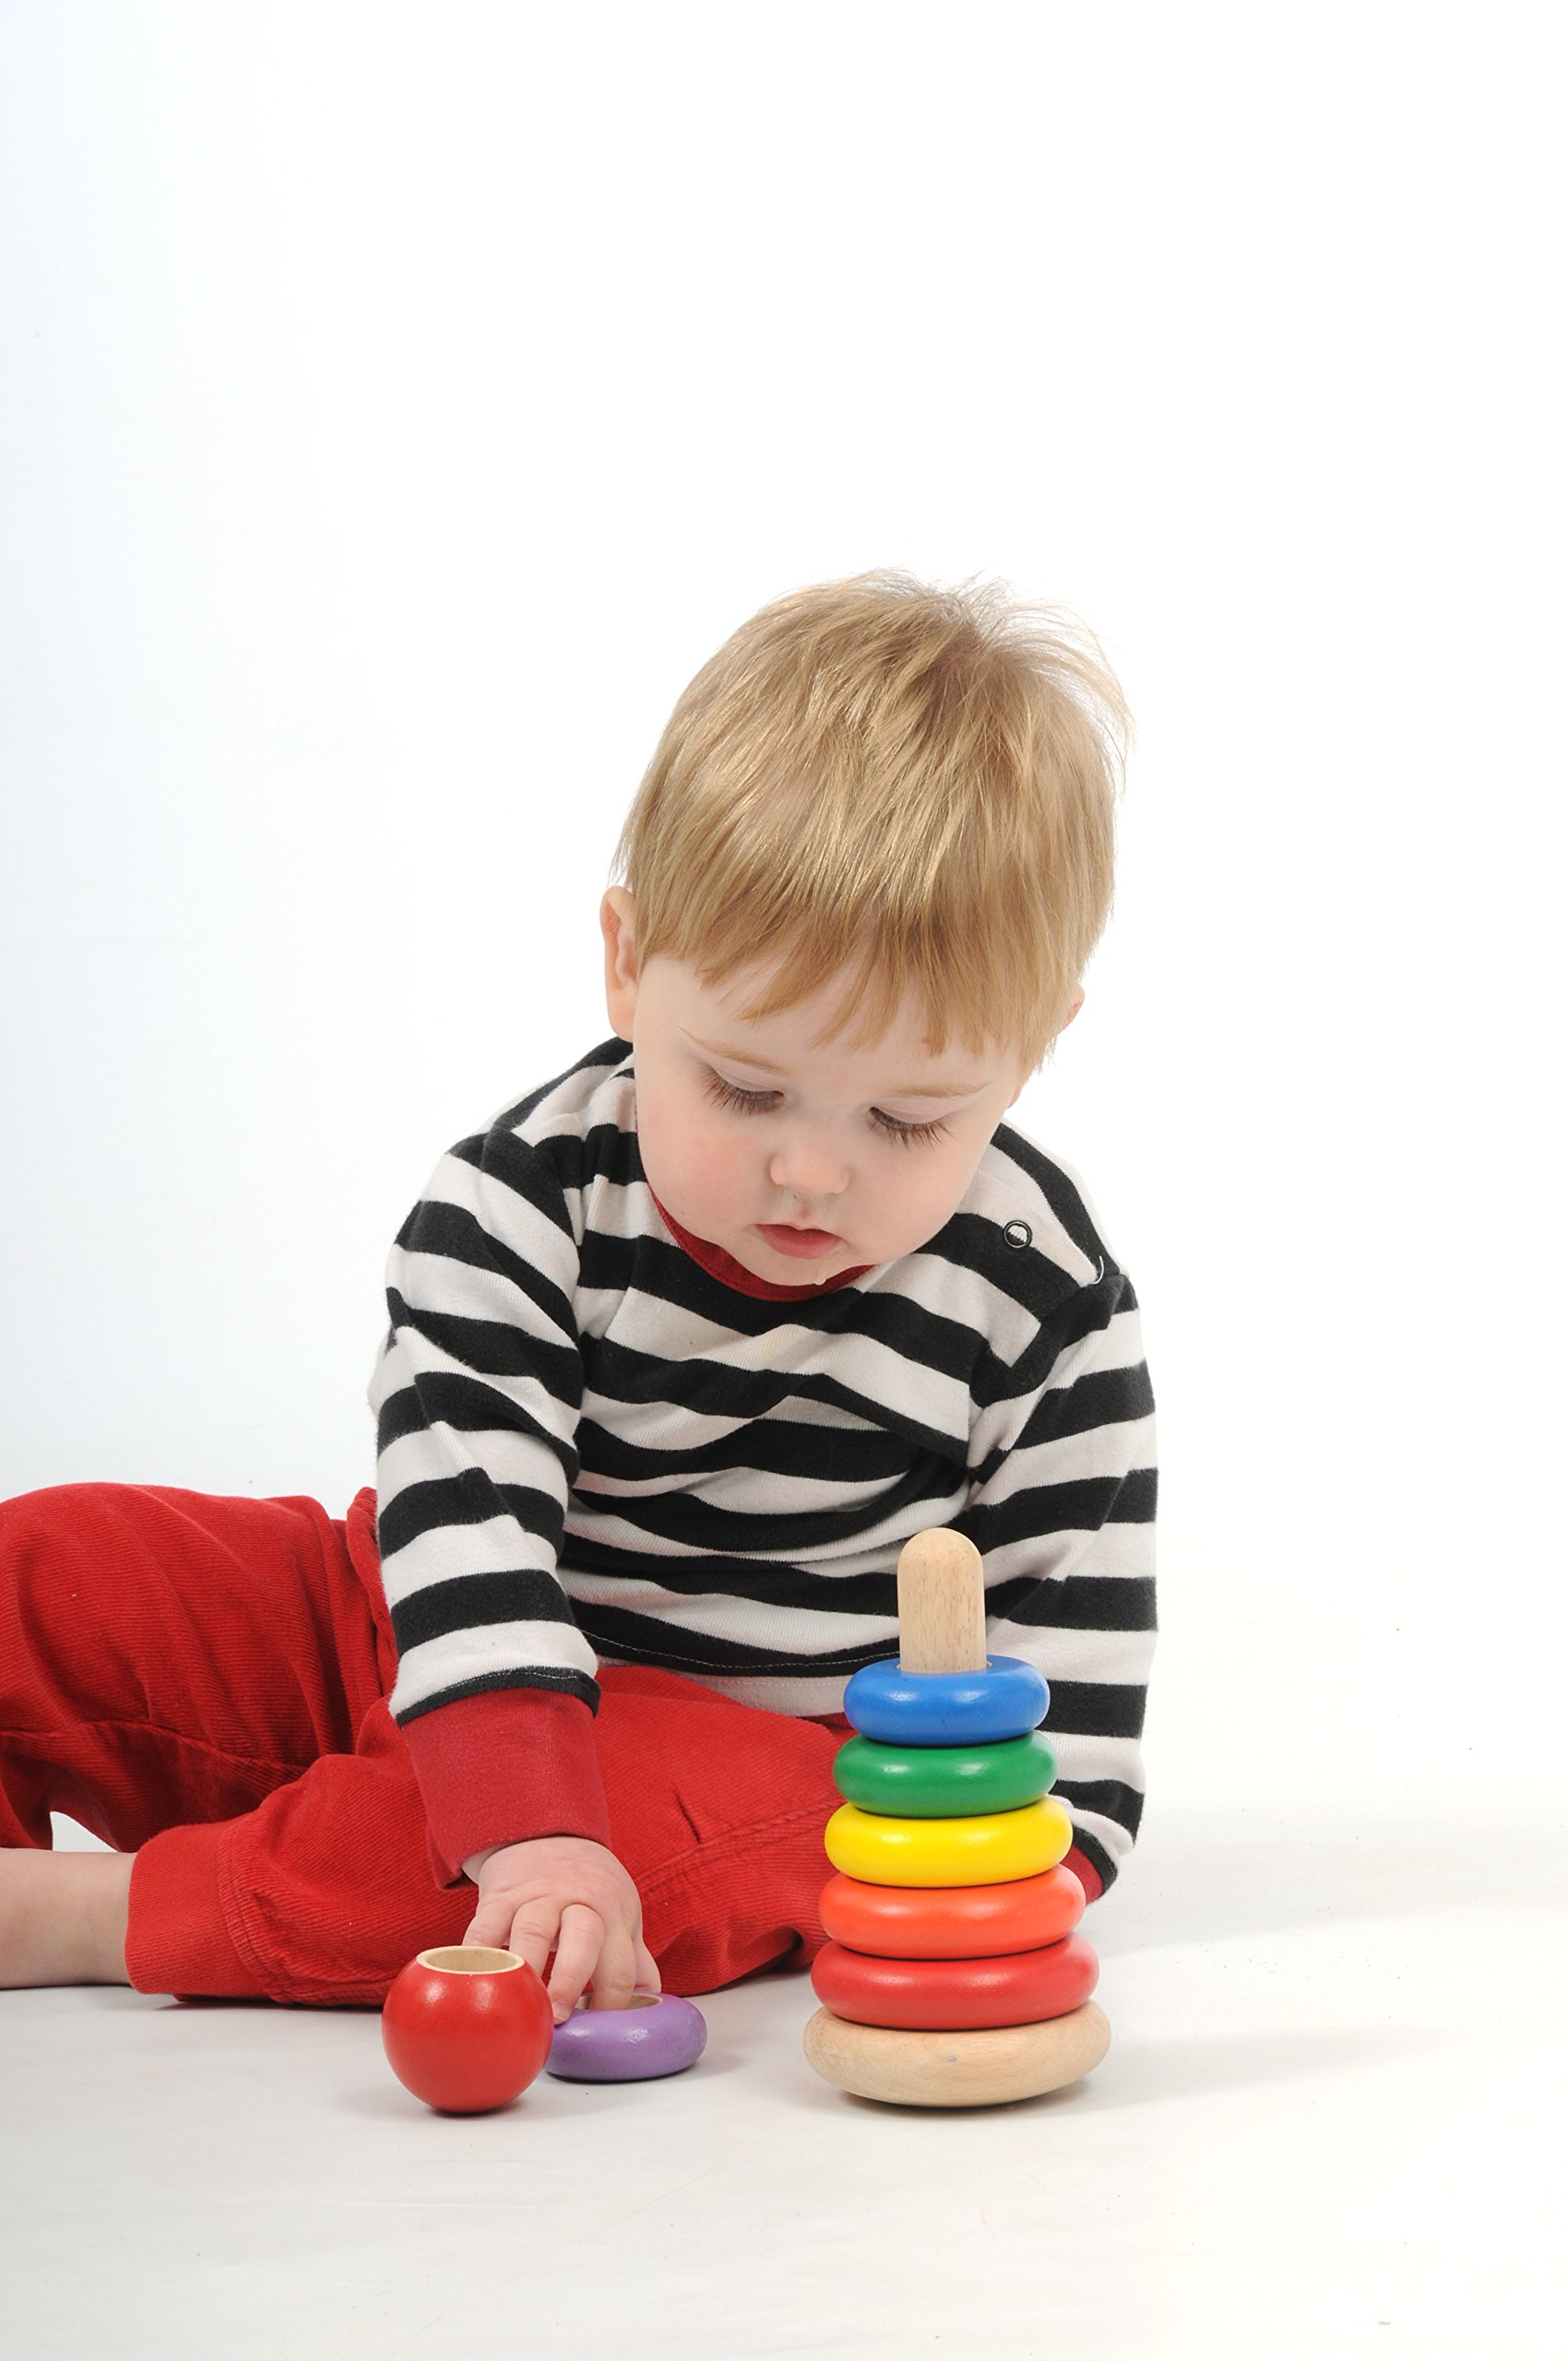 Wonderworld New Stacking Rings Baby Toy - Multi- Colored 7 Rings Non - Toxic by Wonderworld (Image #3)